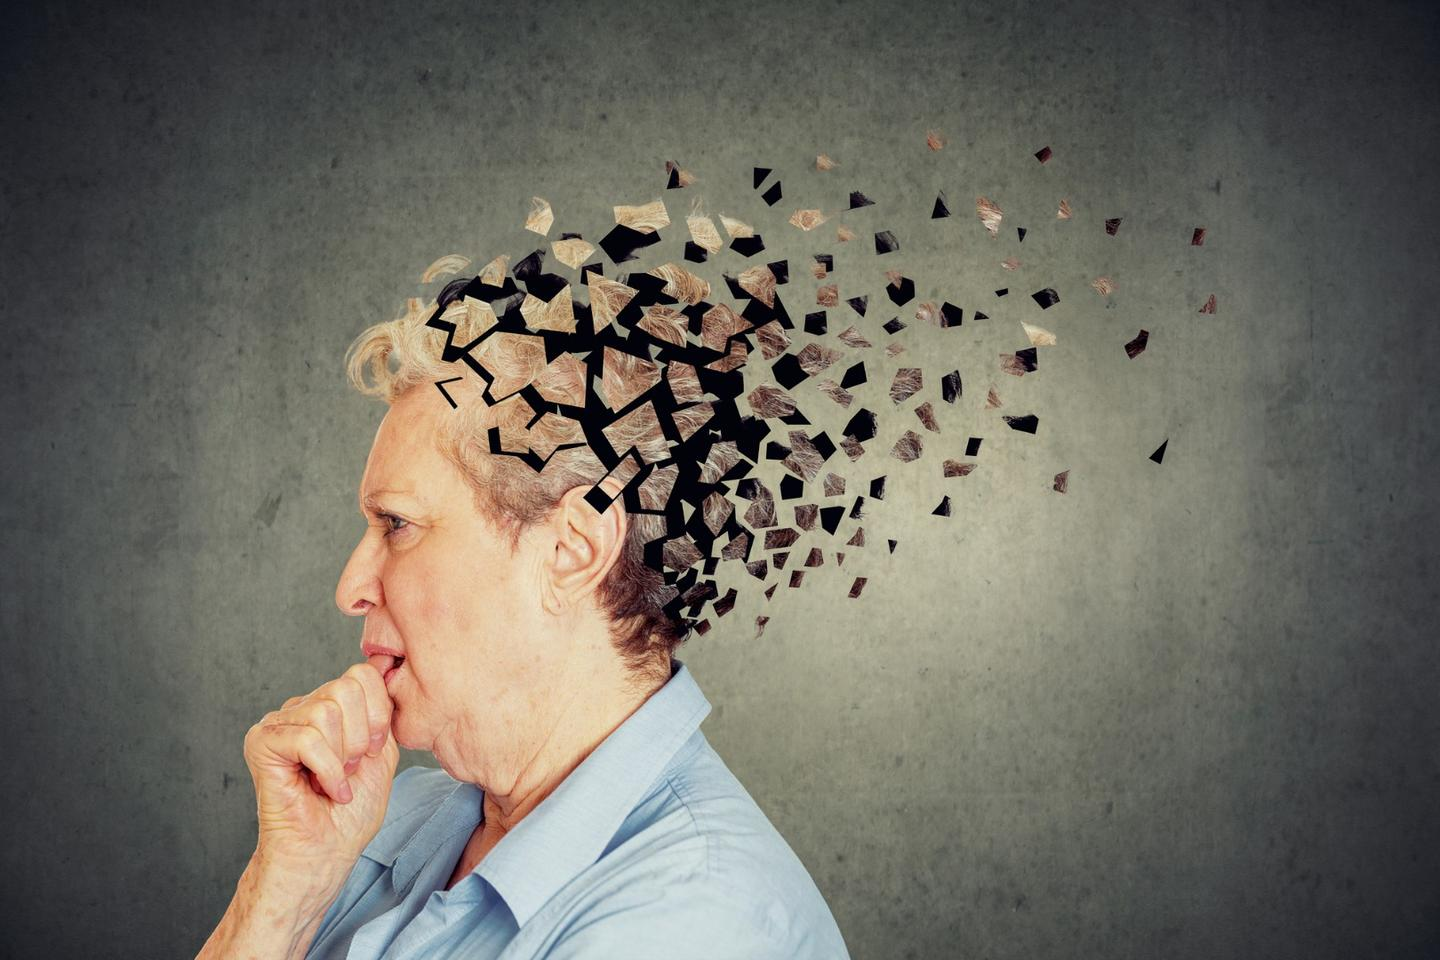 New research suggests somatic DNA mutations that occur while the brain isdevelopingin the womb could be the seed fordementia development in laterlife